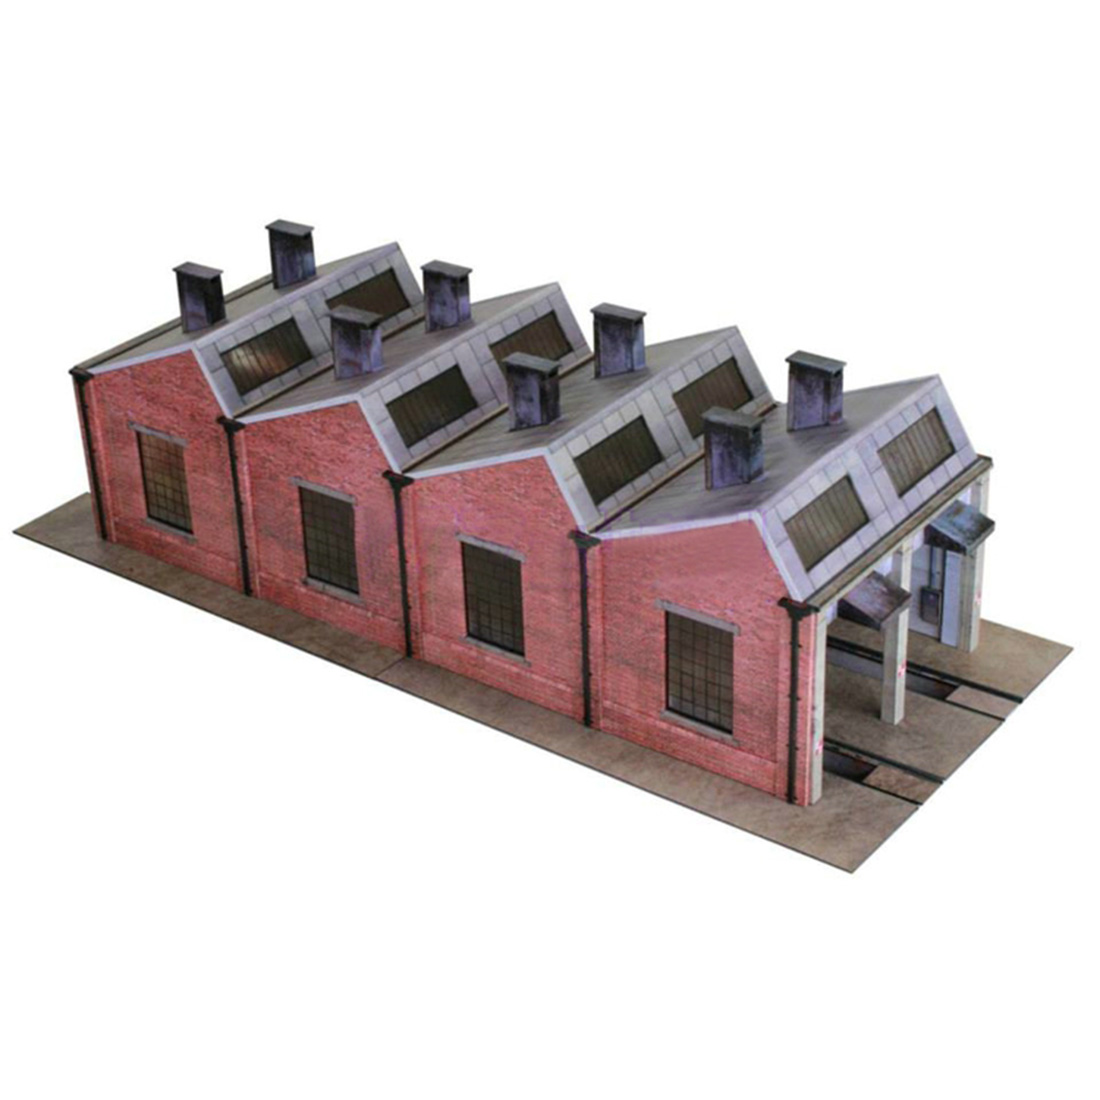 16/10/2018· about press copyright contact us creators advertise developers terms privacy policy & safety how youtube works test new features press copyright contact us creators. 1 87 Ho Scale Handmade Paper Model Train Repair Shop Sand Table Paper Repair Room Model Building Kit Topmodelbuilding